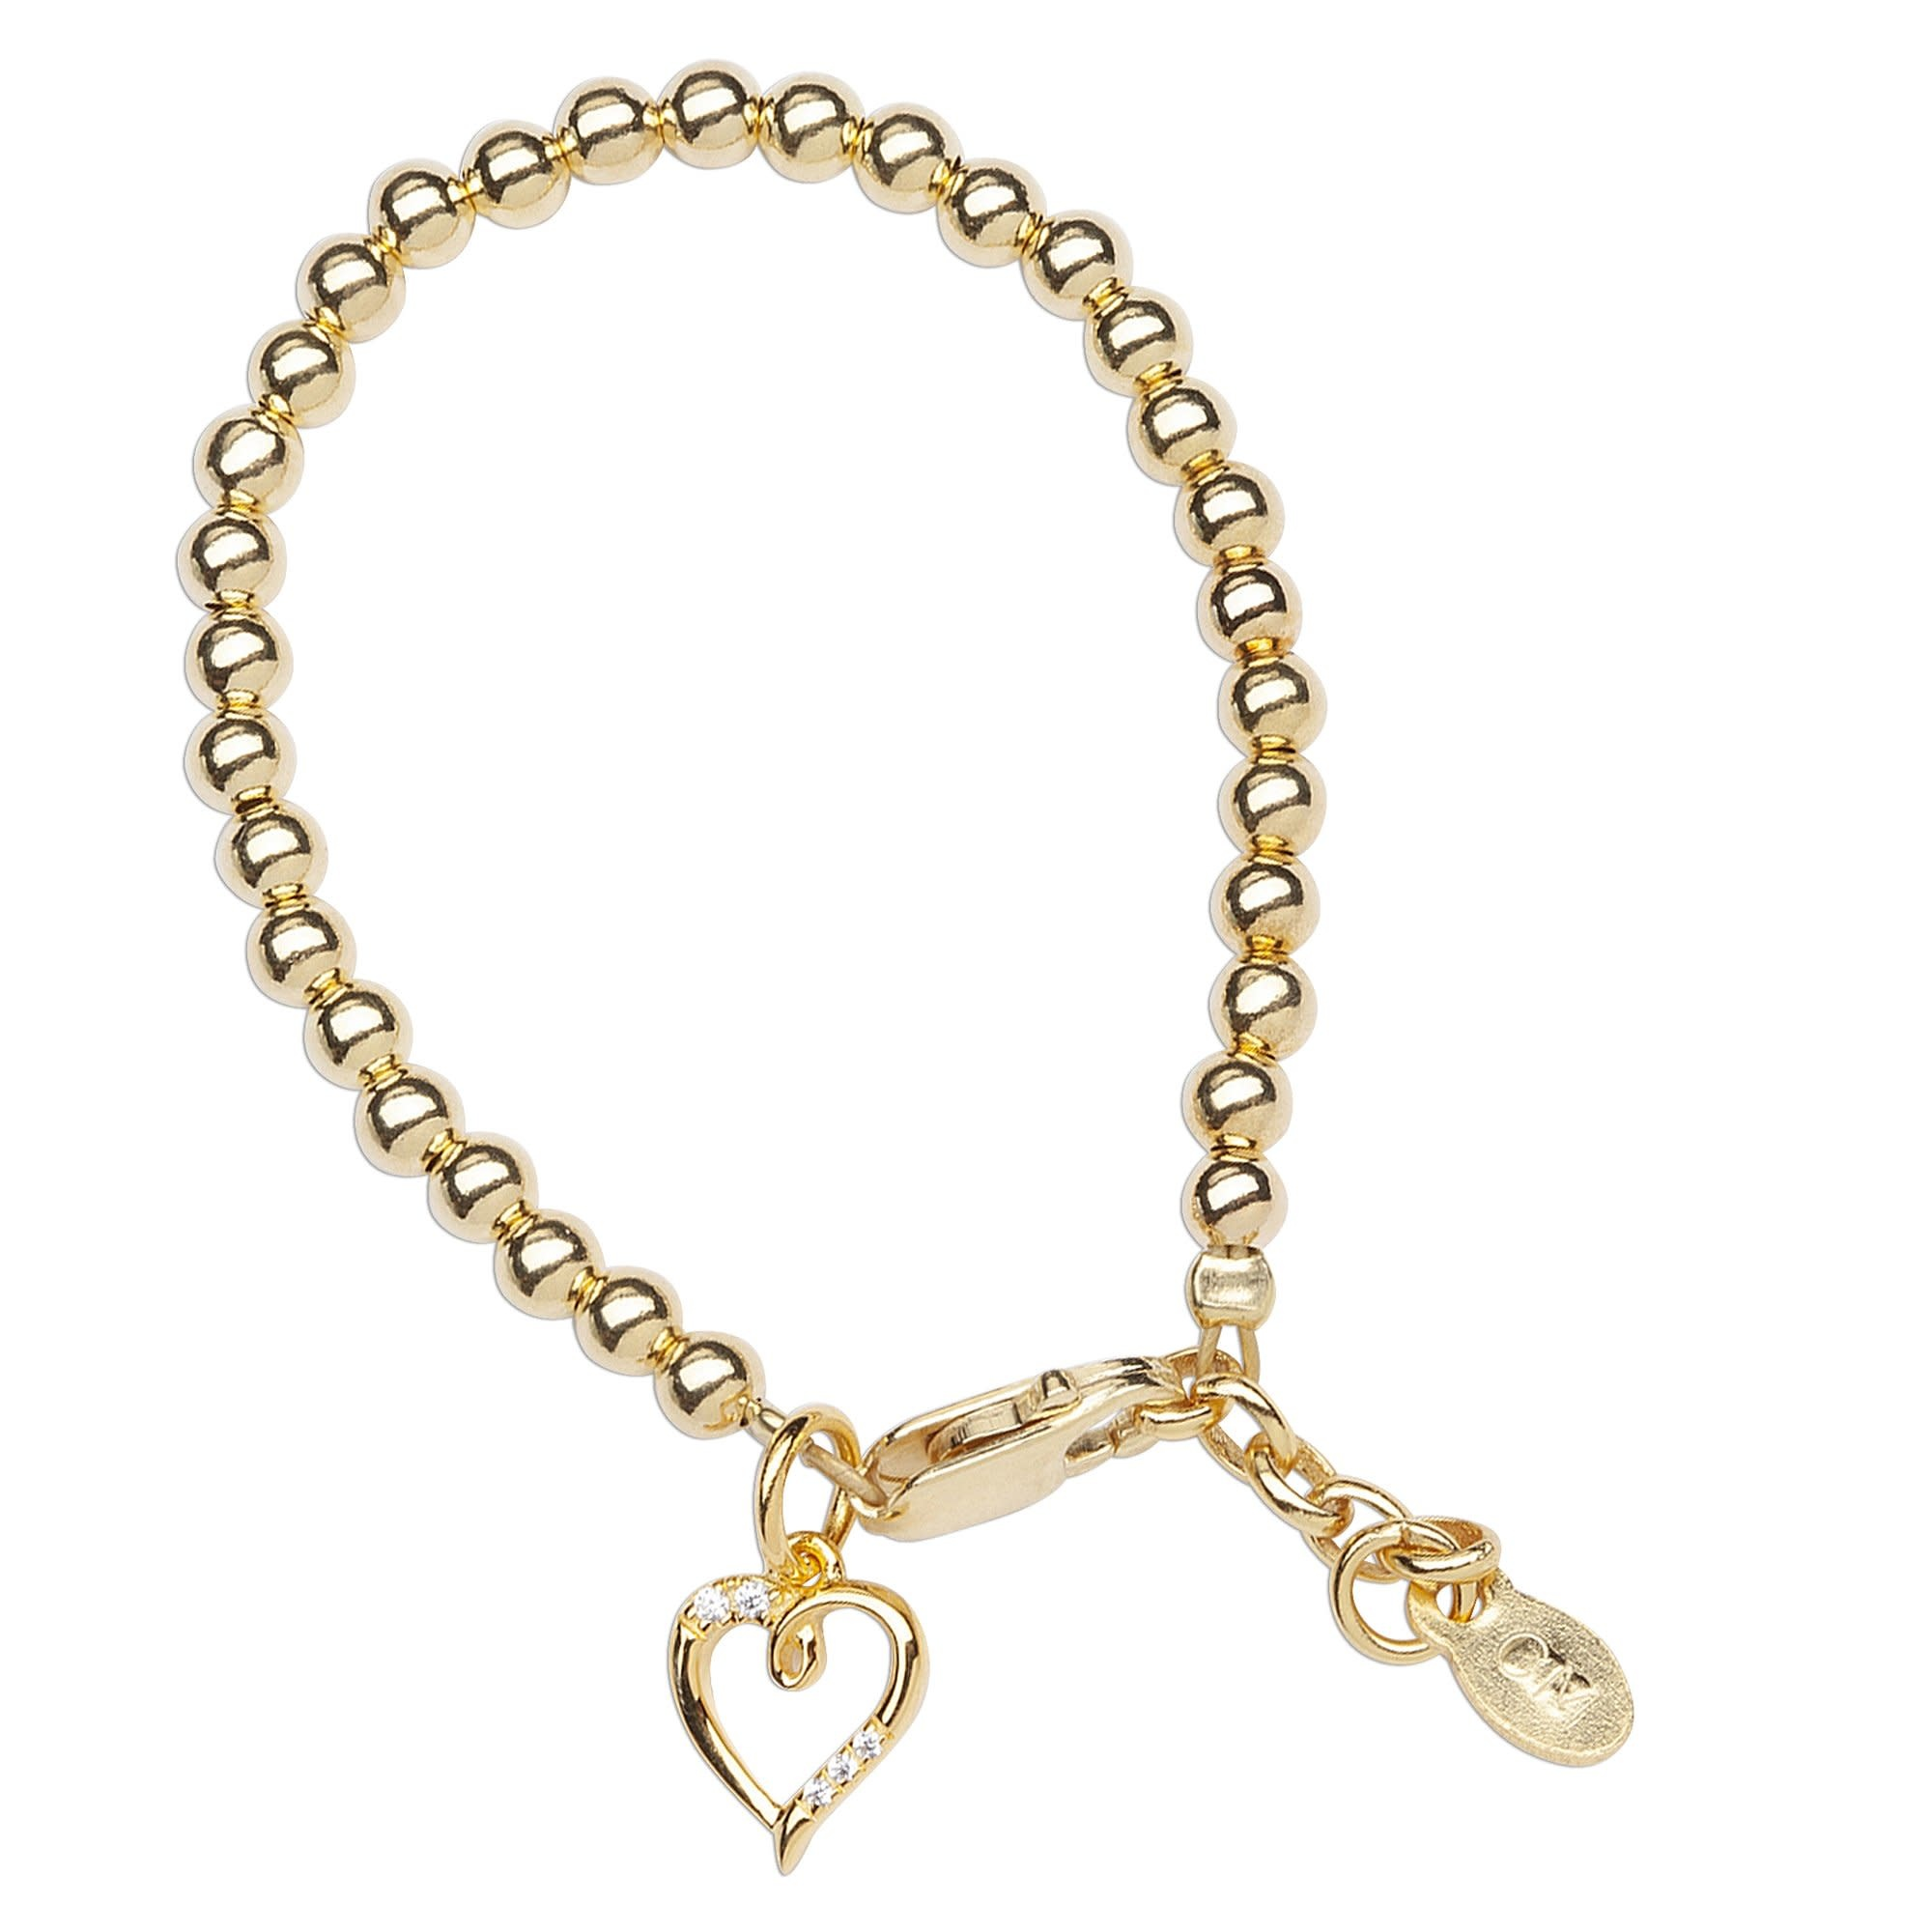 Aria Bracelet - Gold Plated Over Sterling Silver